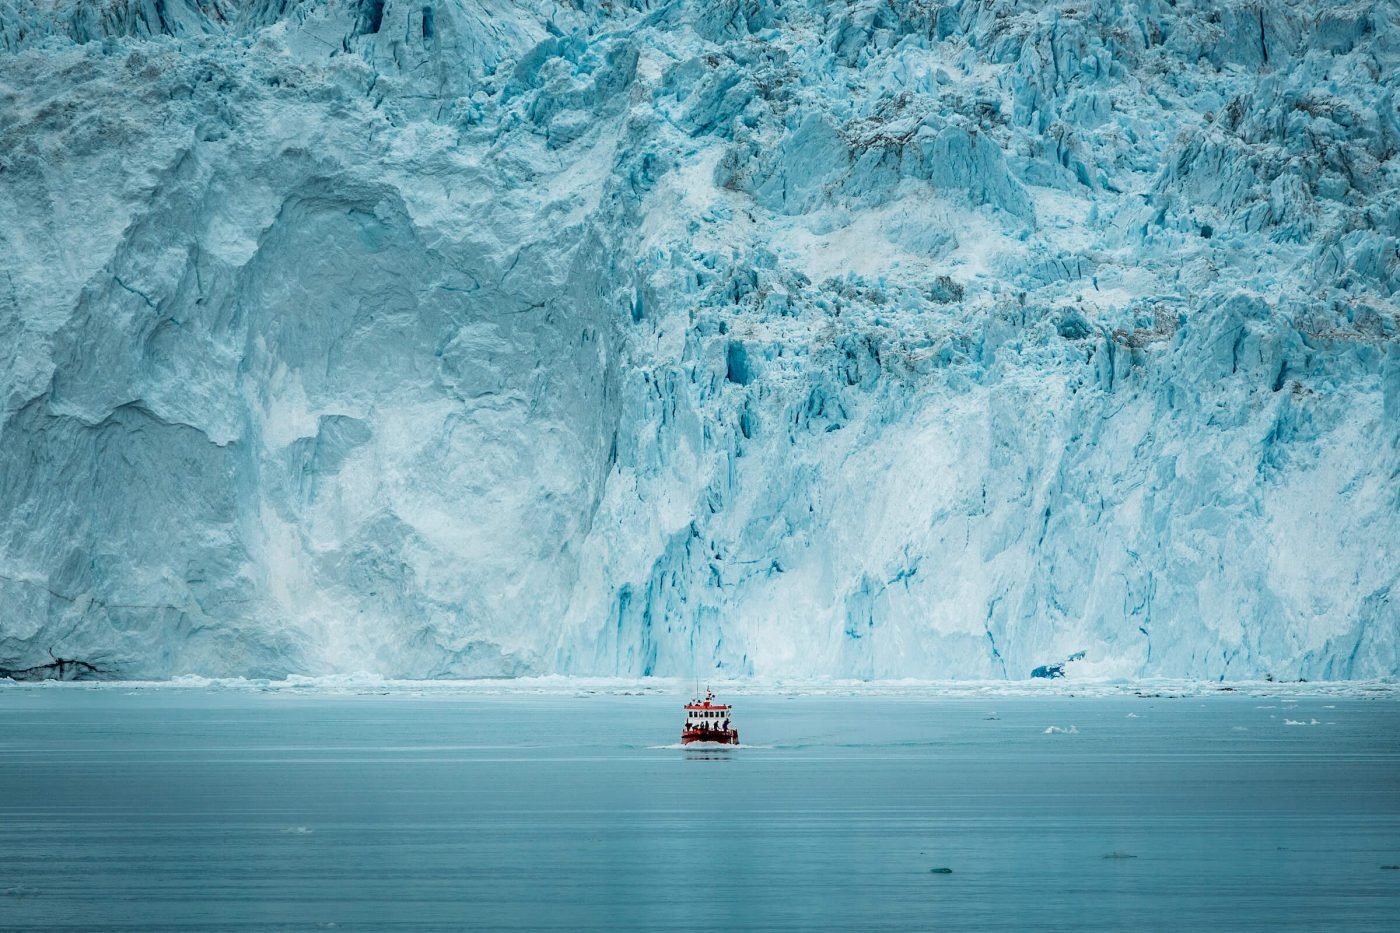 A small passenger boat in front of the huge glacier wall at the Eqi glacier in Greenland. Photo by Mad Pihl, Visit Greenland